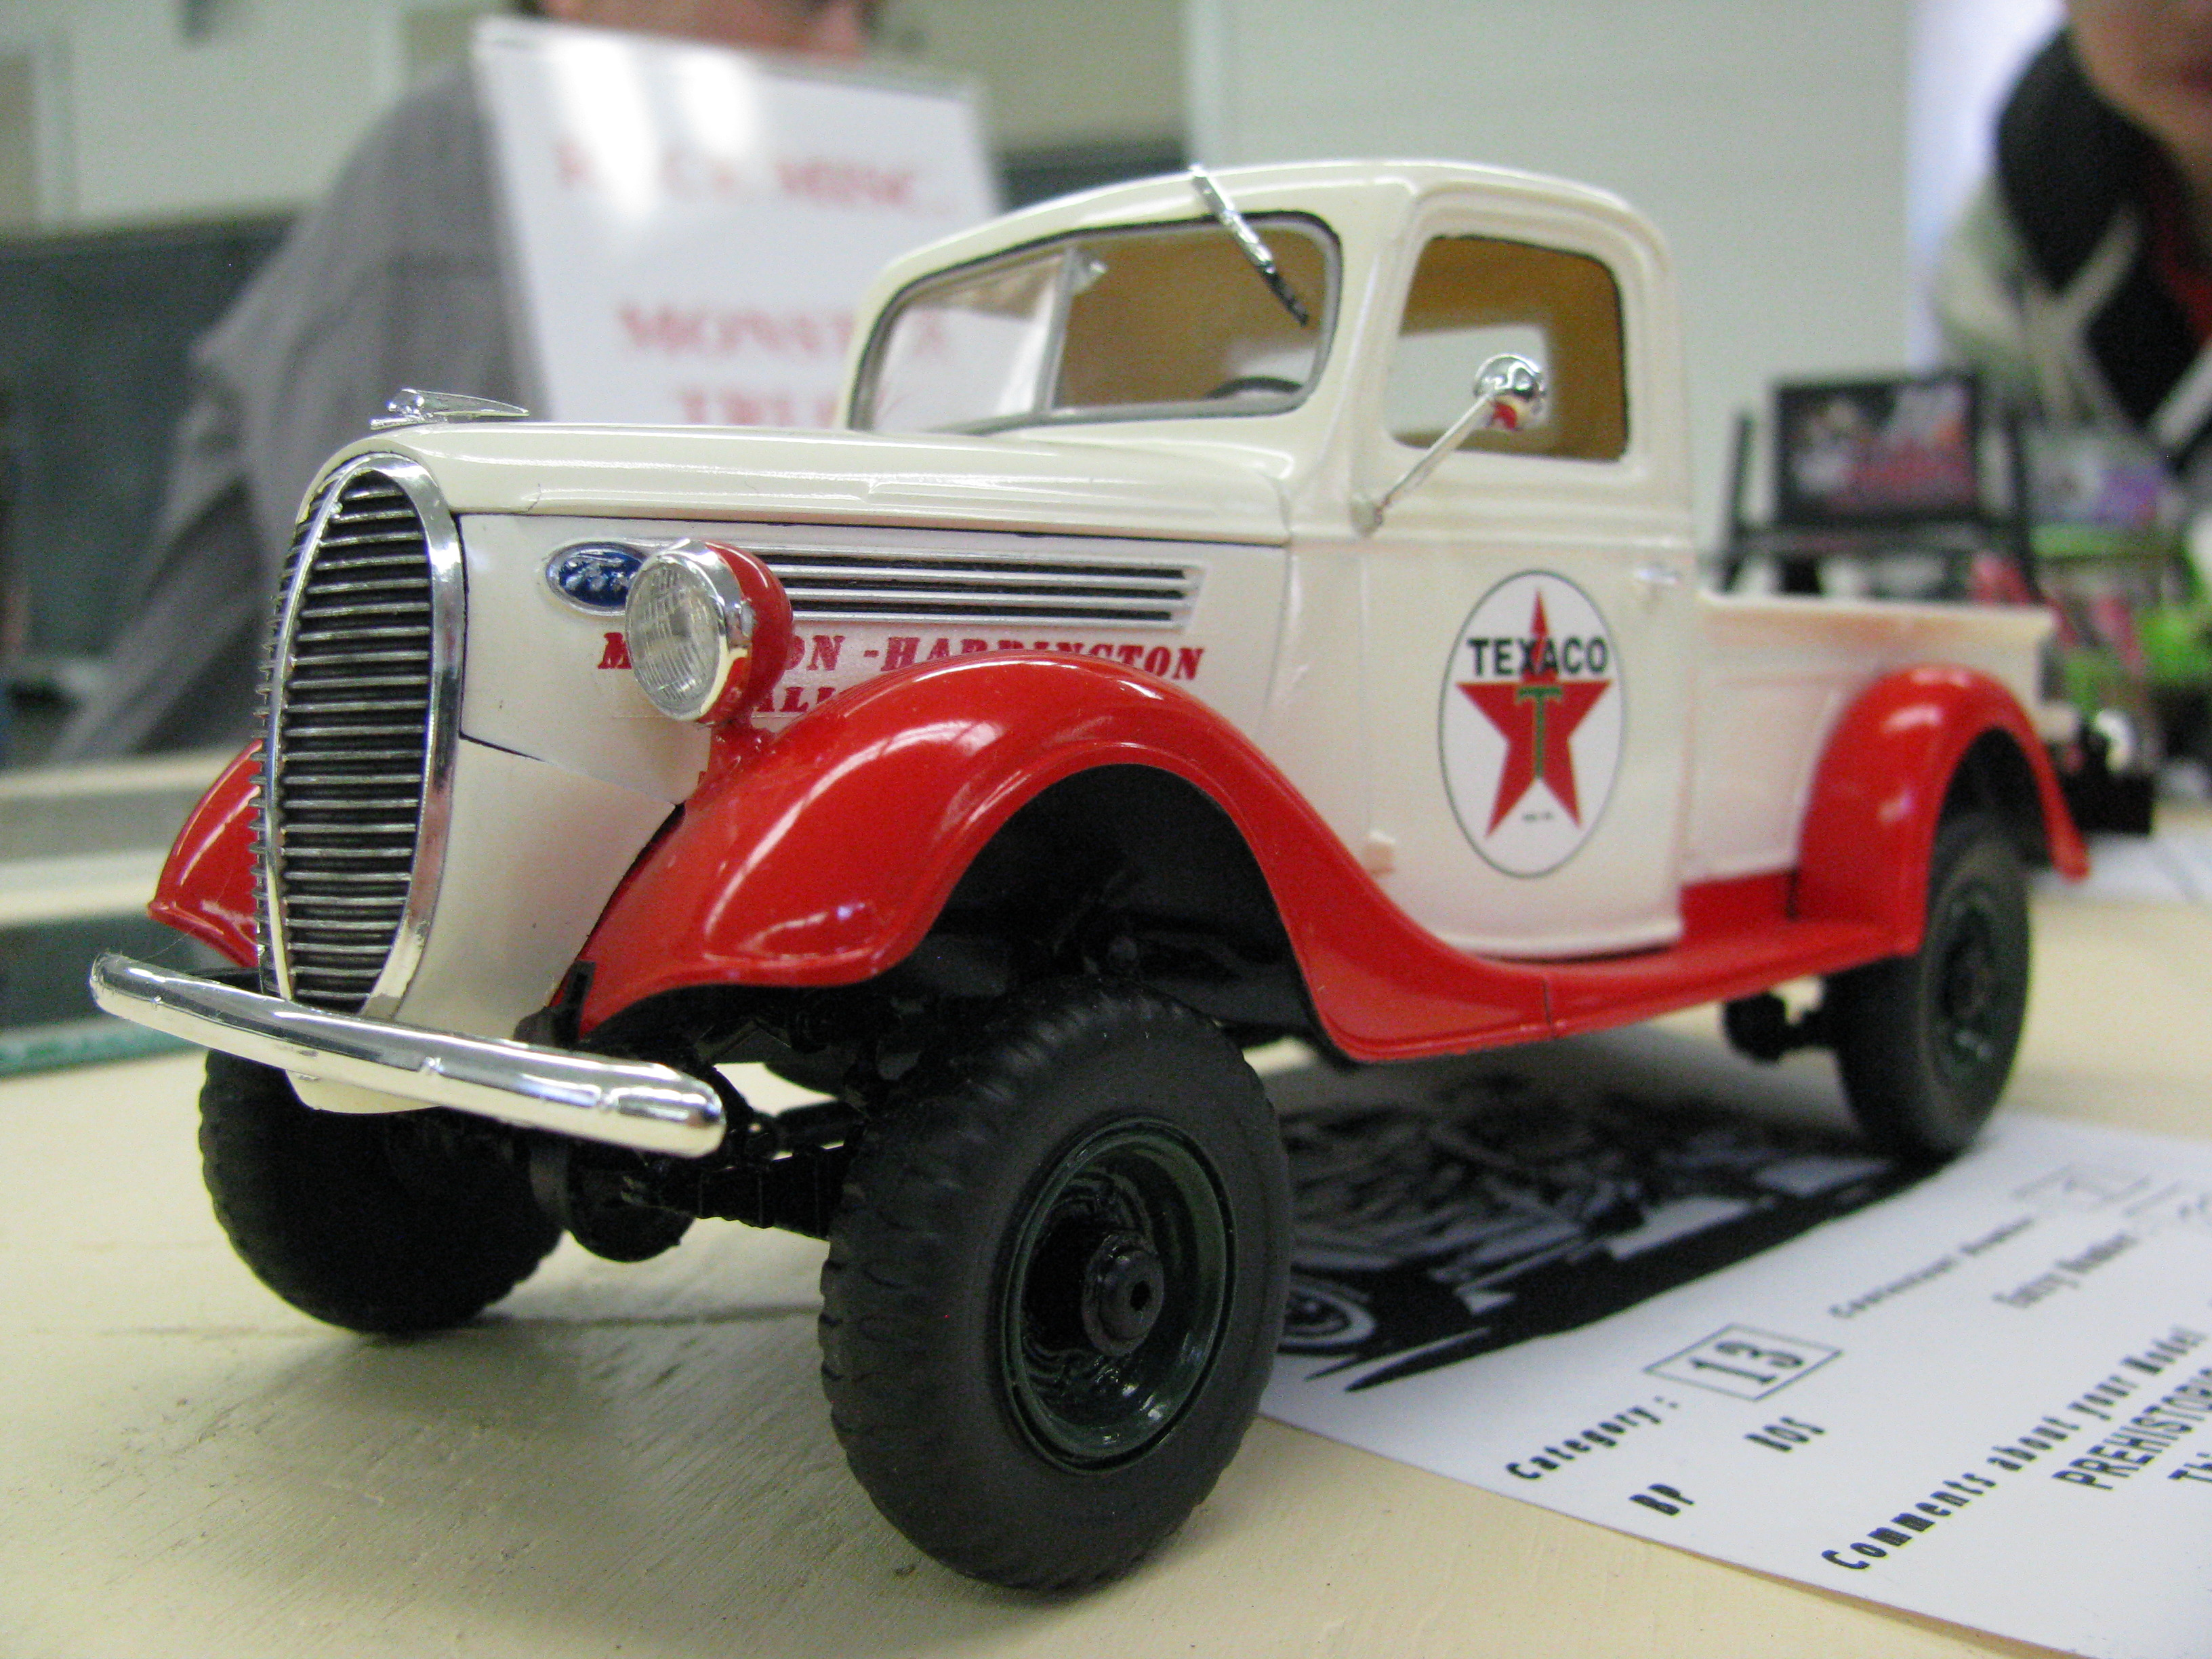 1939 Ford 4x4 Related Keywords Suggestions Long Marmon Truck Wiring Diagrams Texaco The Crittenden Automotive Library